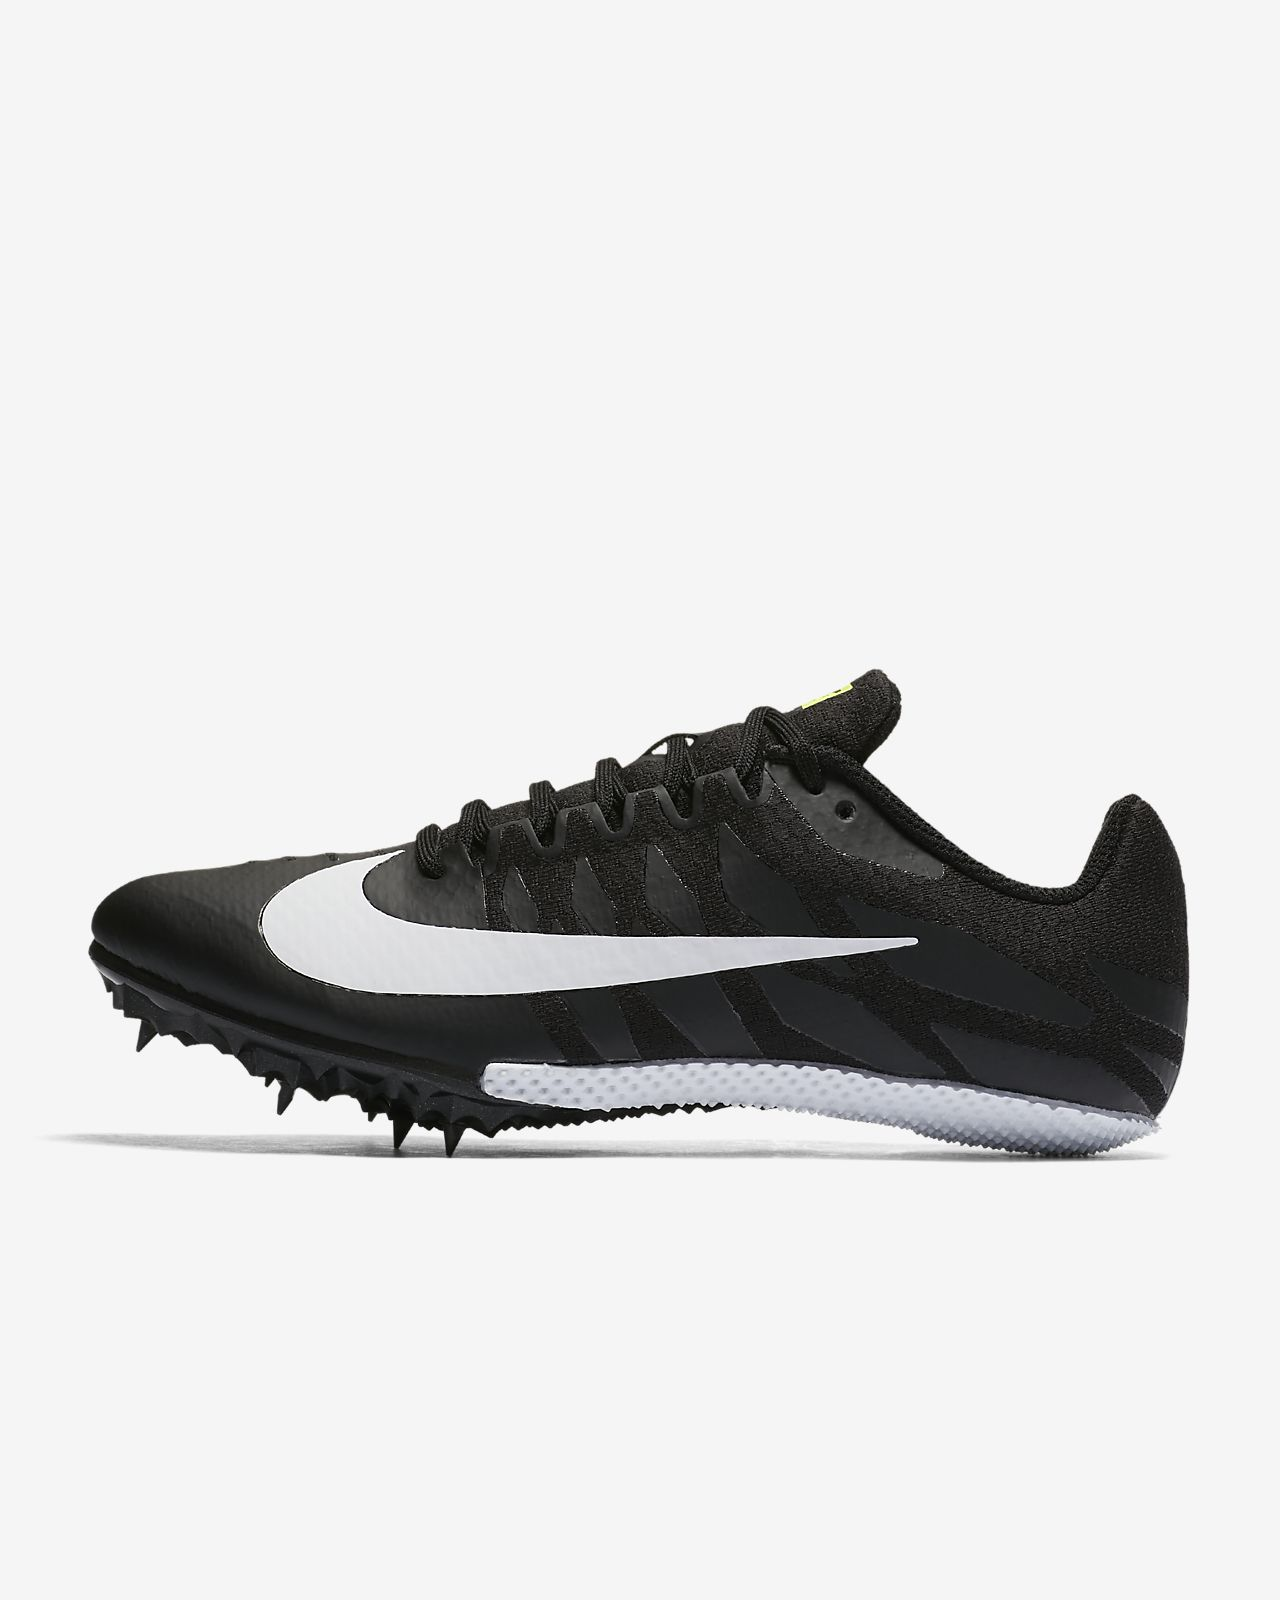 Nike Zoom Rival S 9 Women's Track Spike